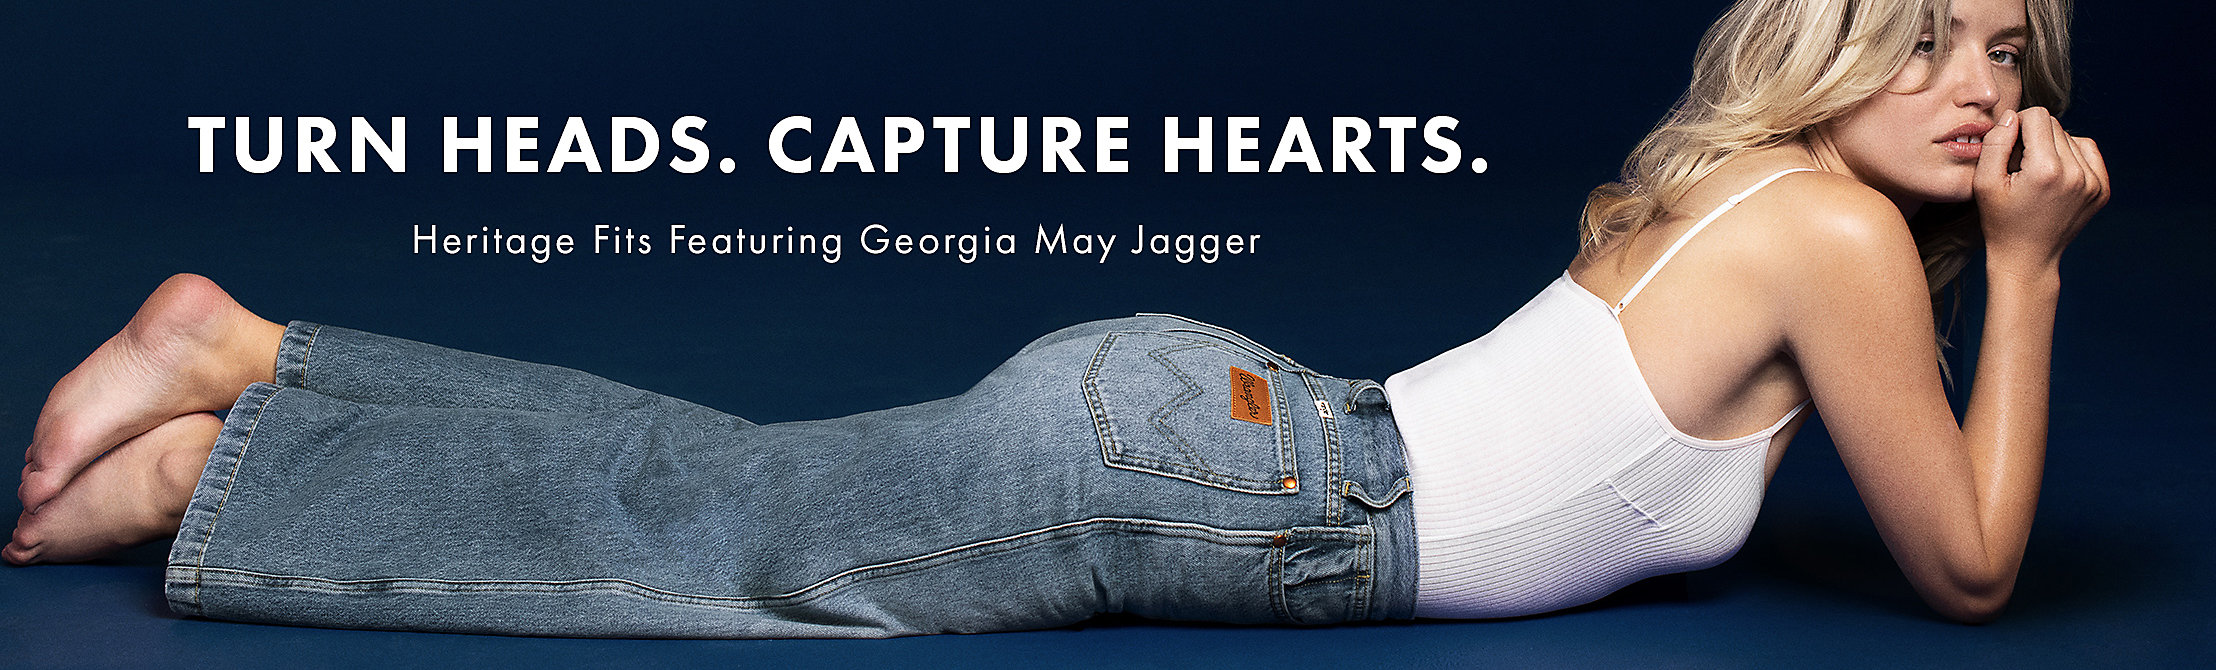 Heritage Fits Featuring Georgia May Jagger | Wrangler